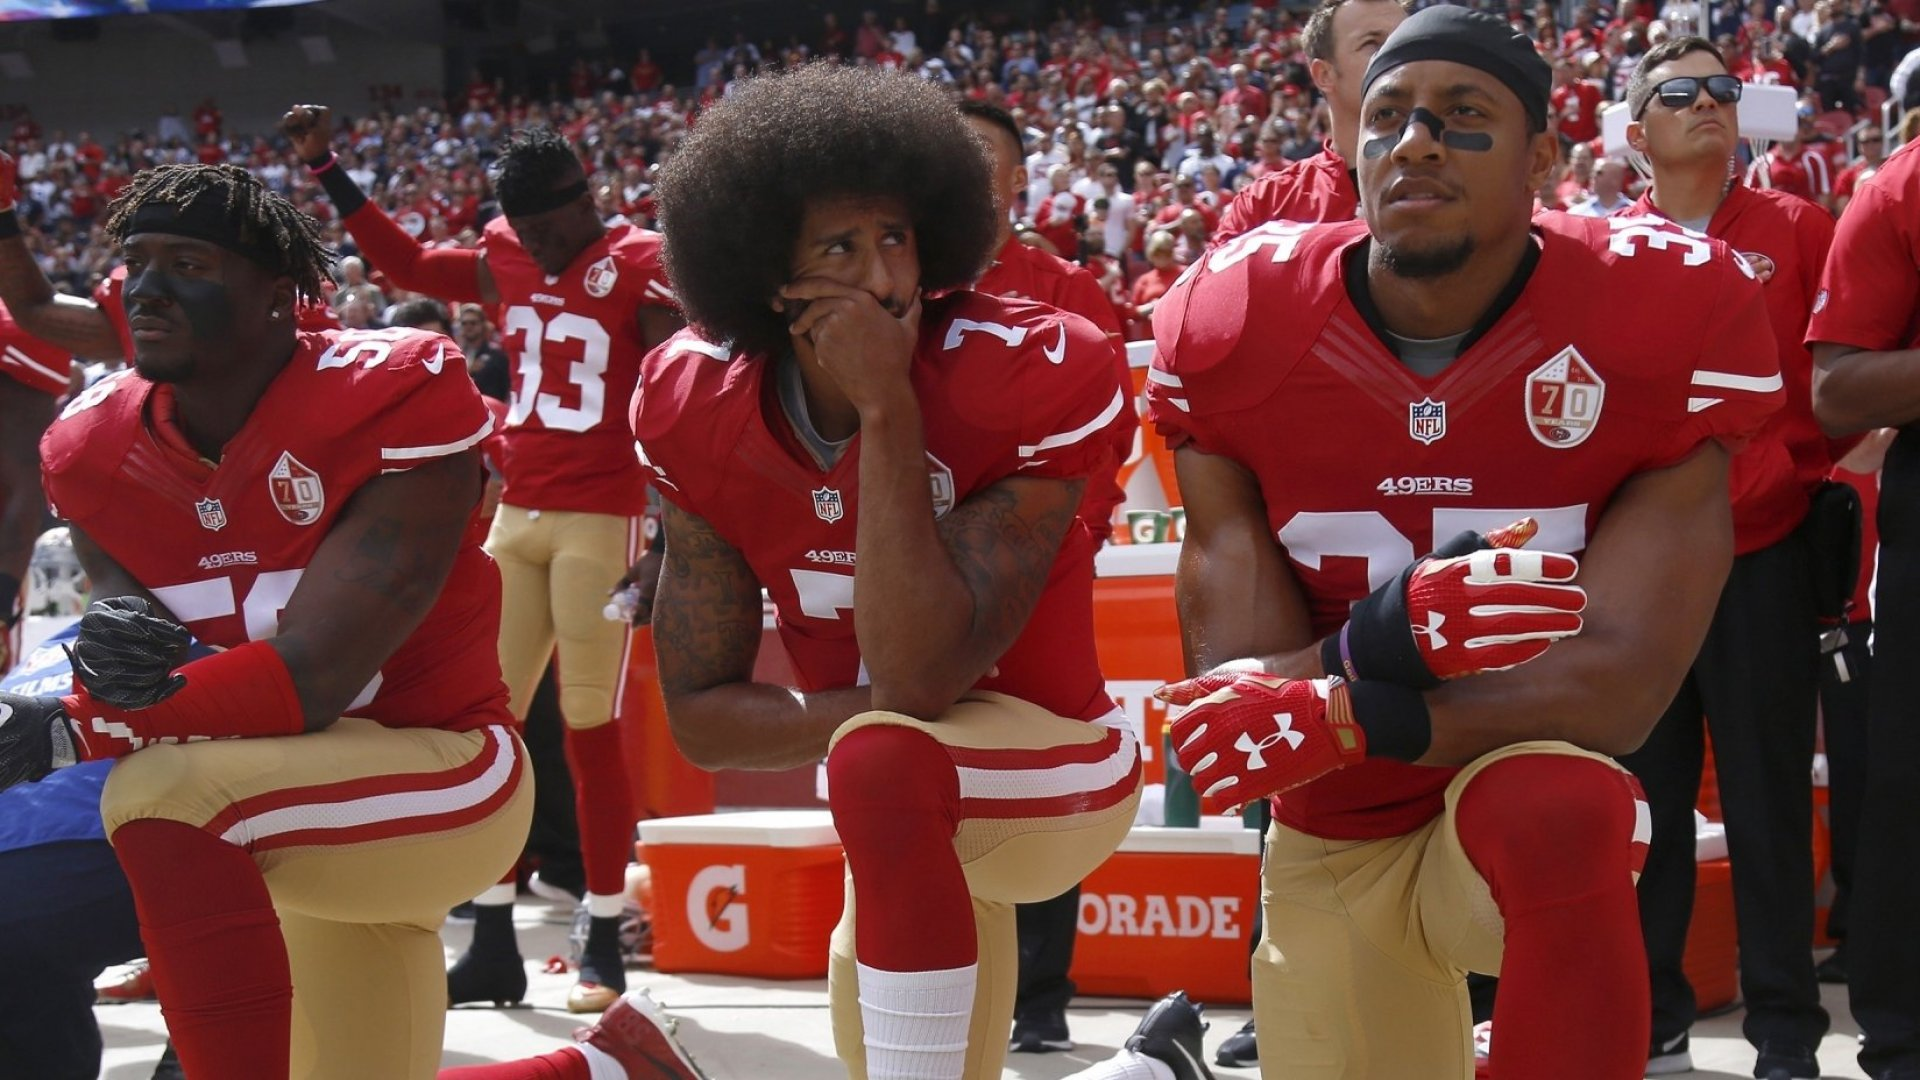 Why I Support the NFL's Right to Ban Kneeling